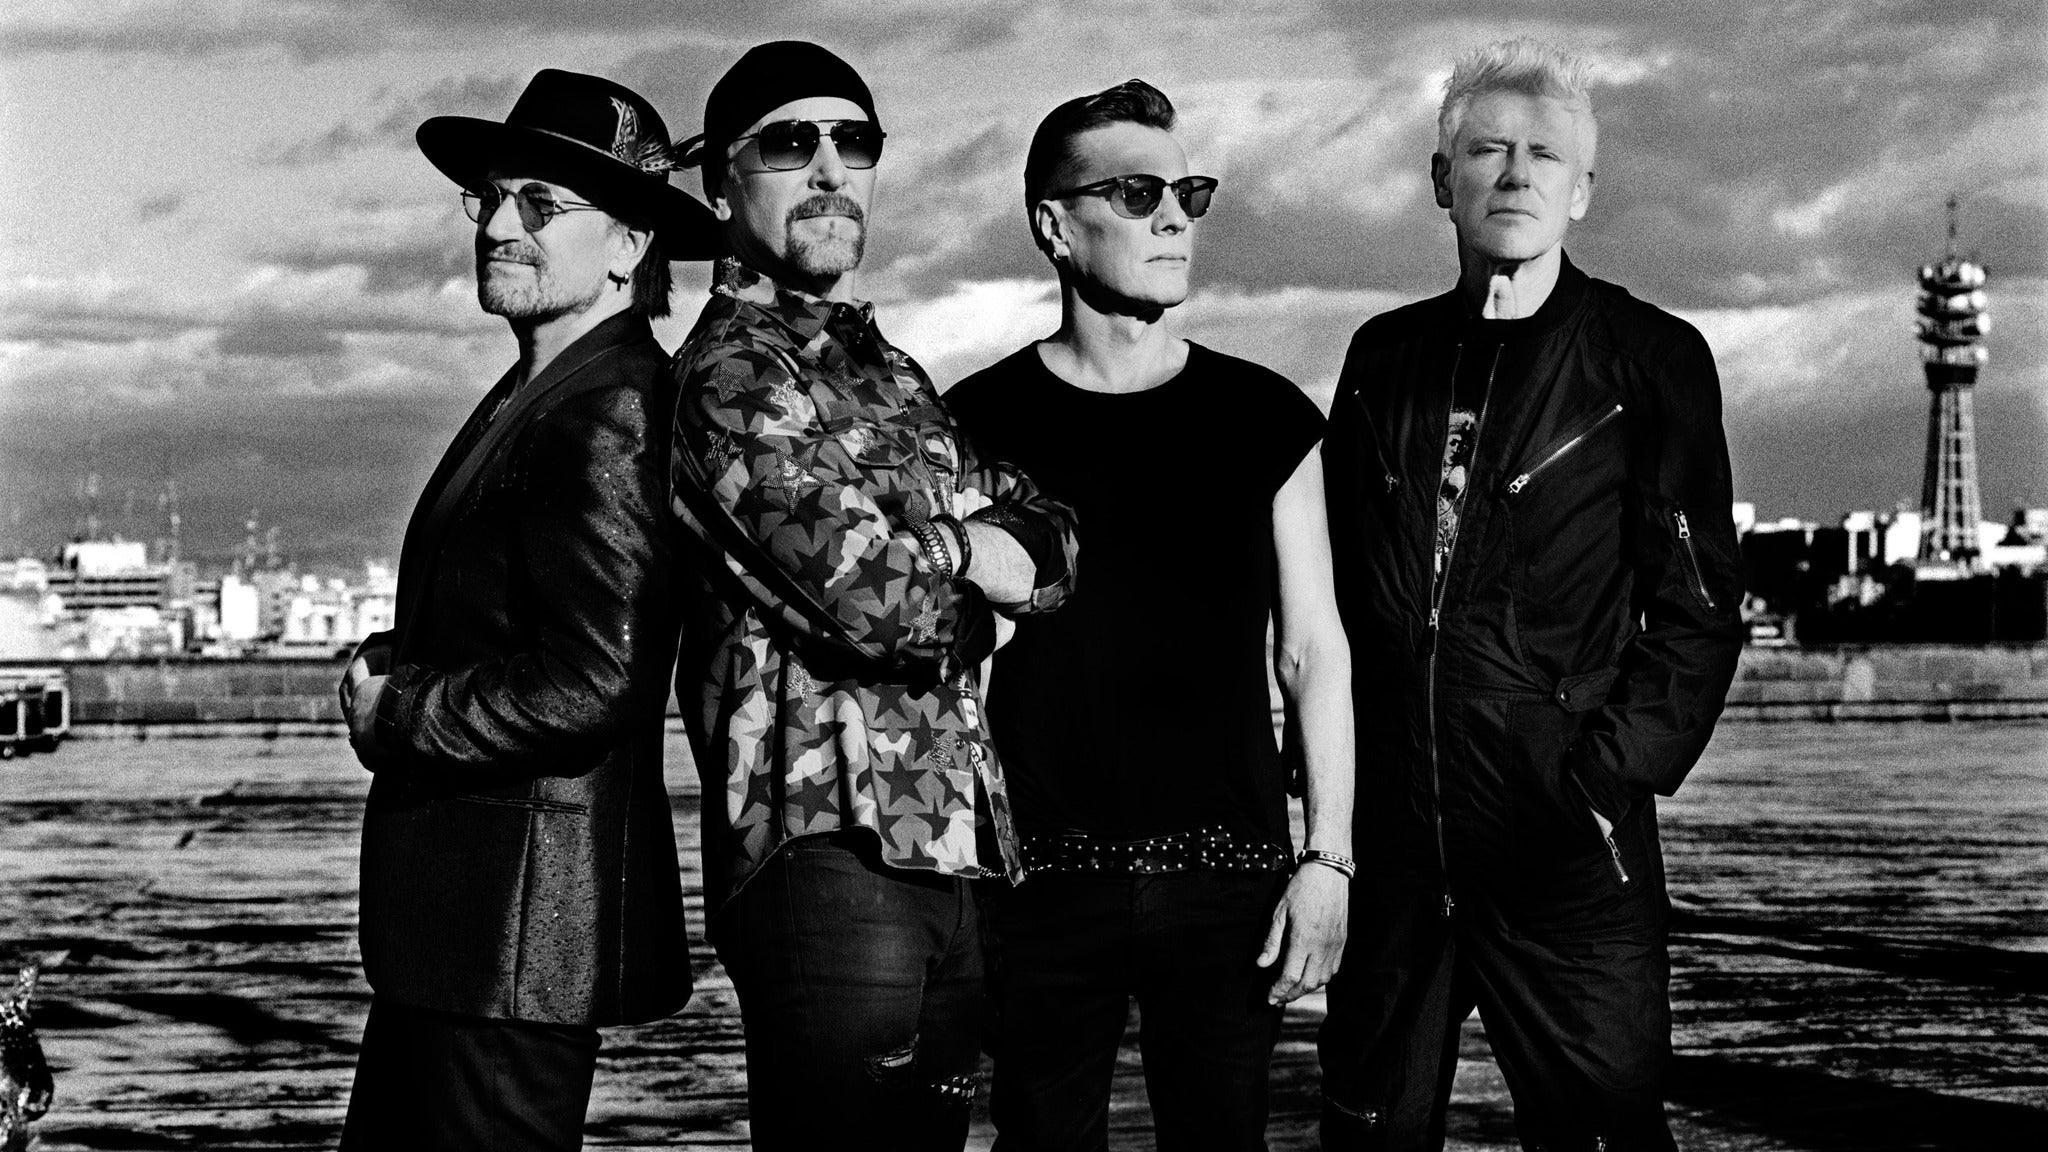 U2 eXPERIENCE + iNNOCENCE Tour 2018 at Mohegan Sun Arena